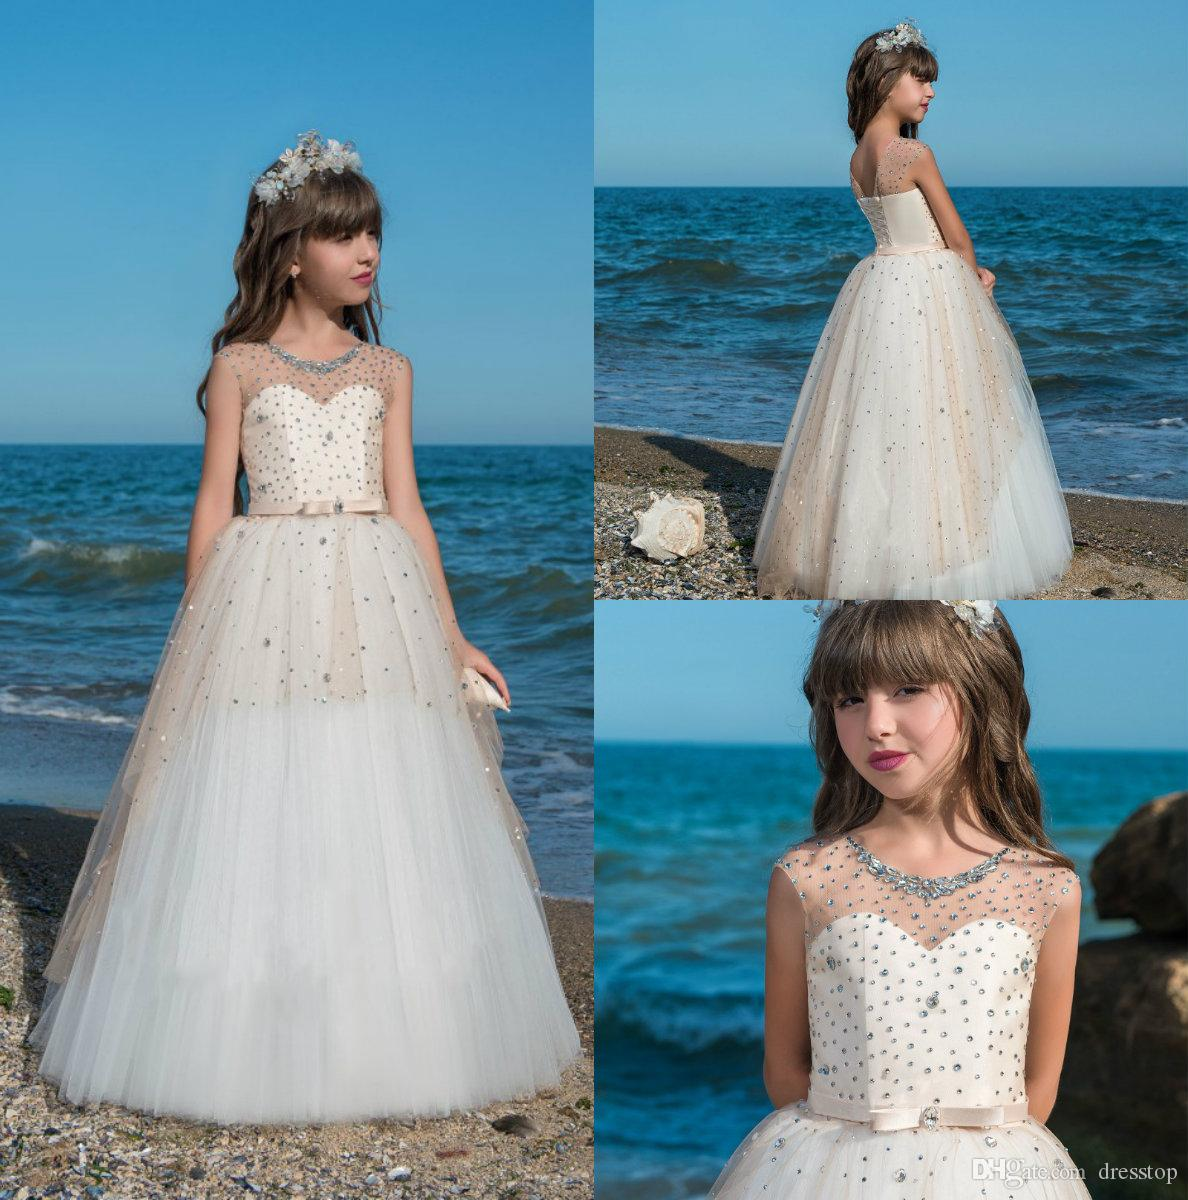 2018 Lovely Flower Girls Dresses For Beach Weddings Sheer Neck Ball ...